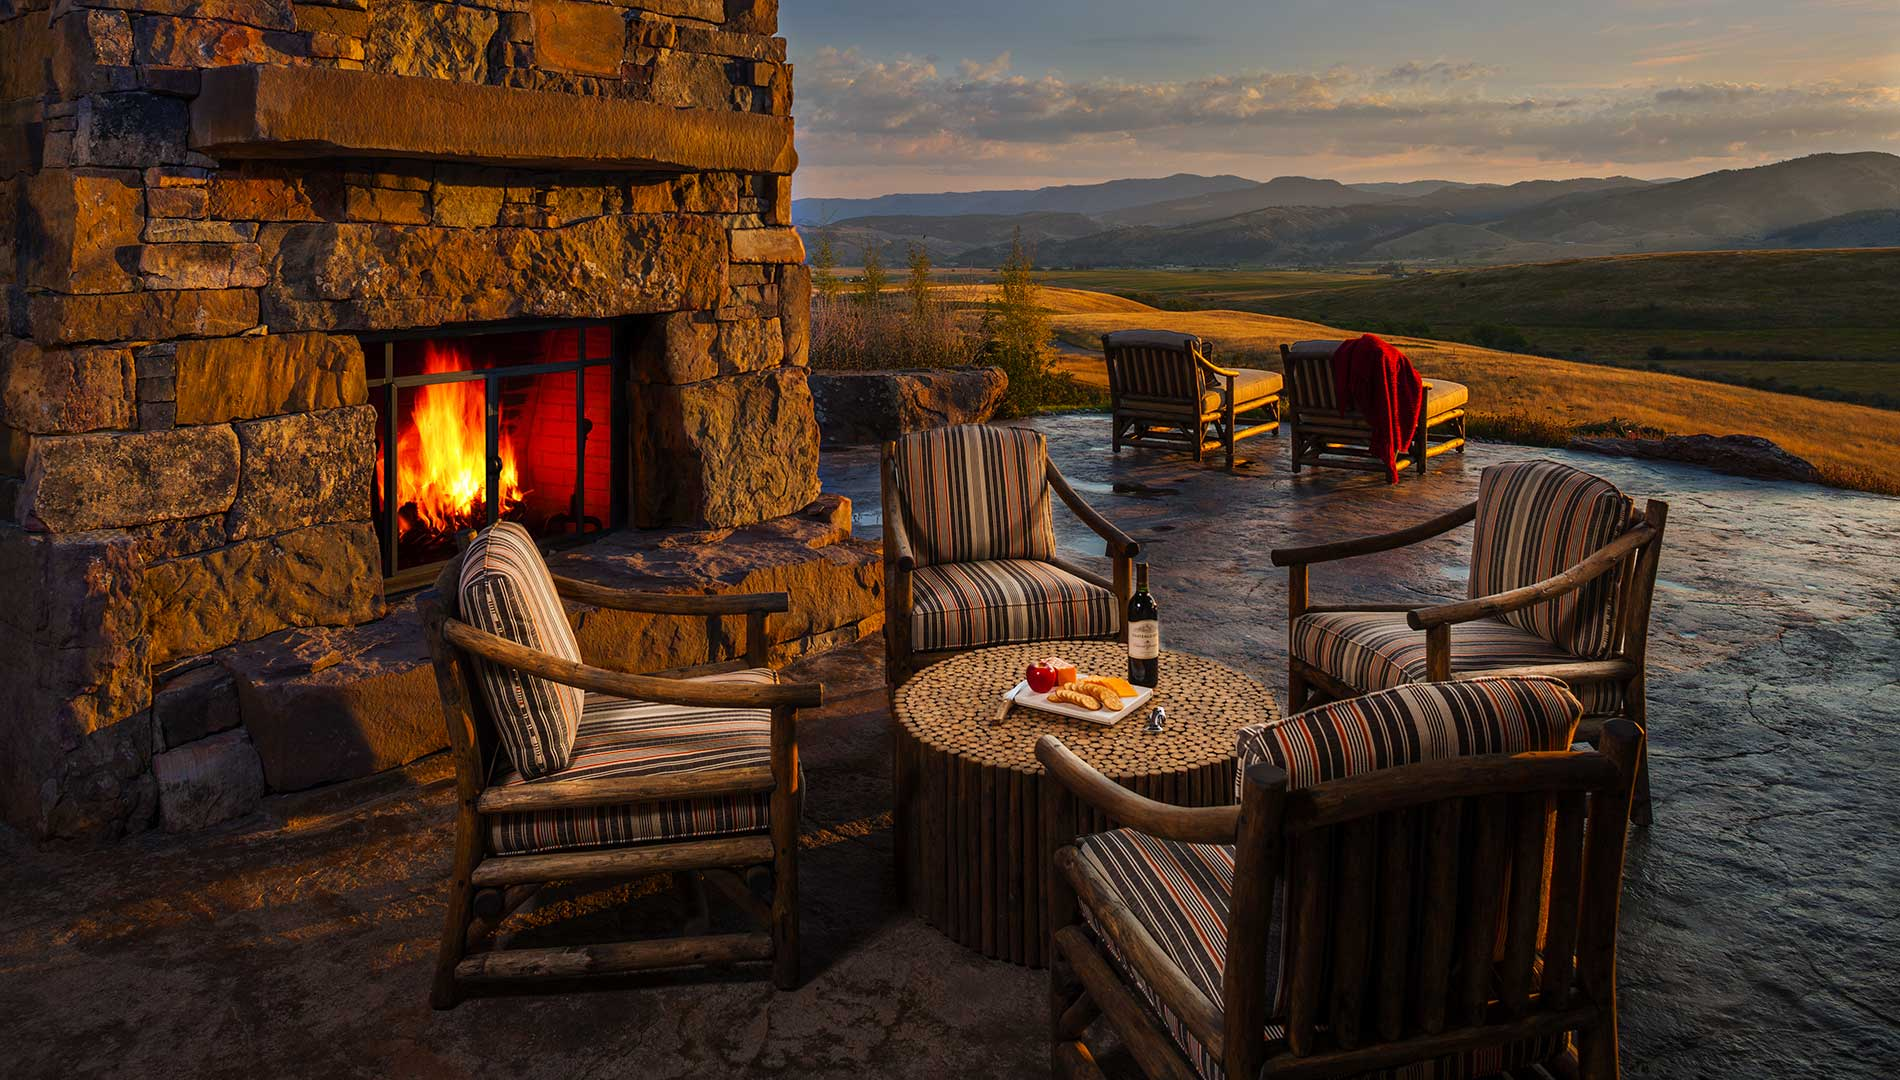 stone patio and outdoor fireplace at the Bozeman Retreat designed by Elizabeth Robb Interiors